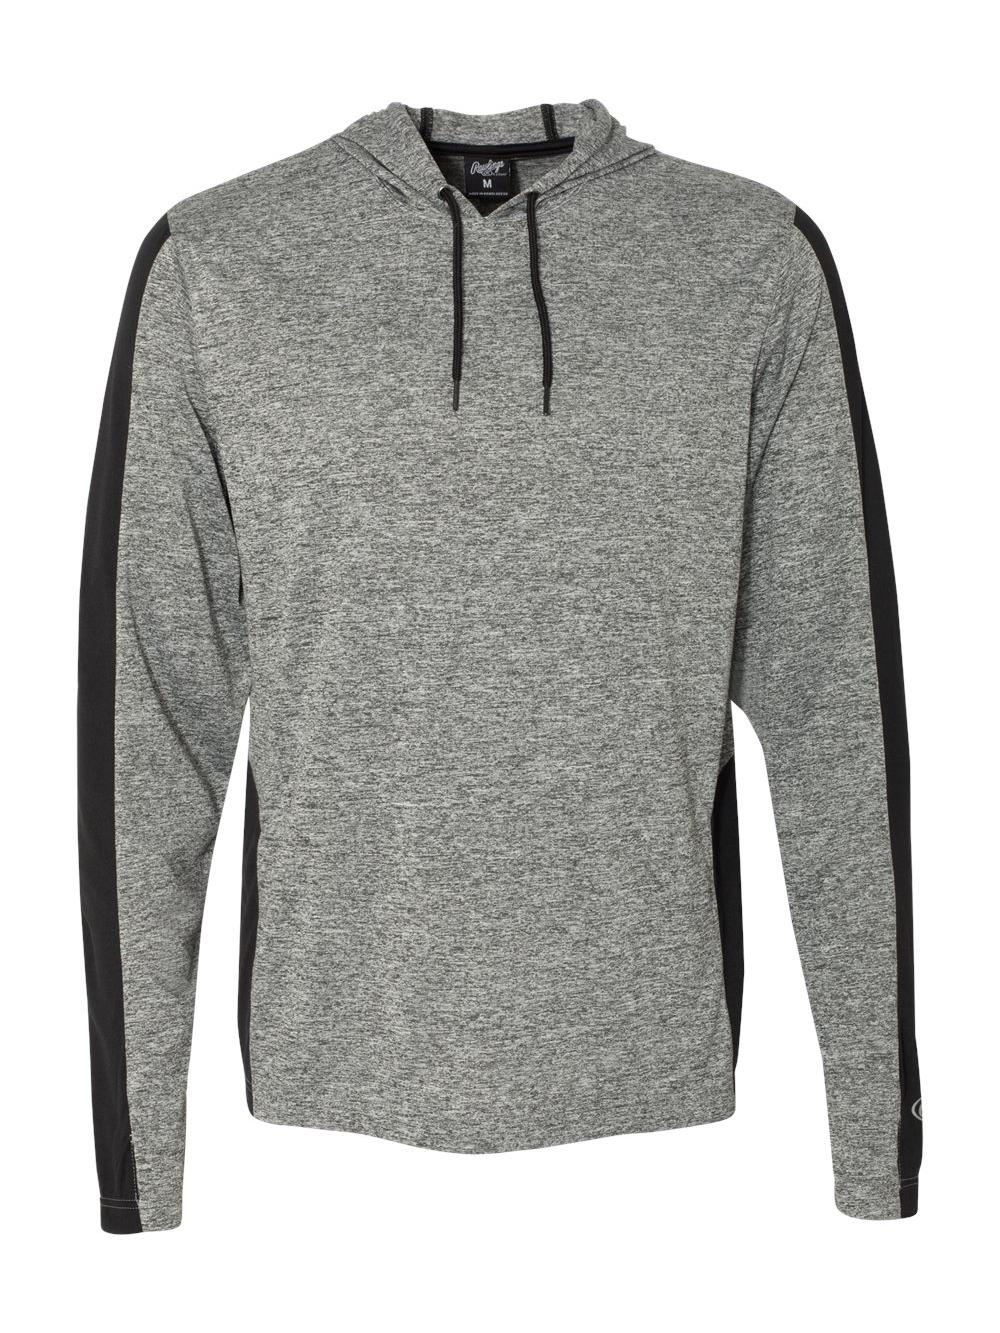 Rawlings-Performance-Cationic-Hooded-Pullover-T-Shirt-8199 thumbnail 6